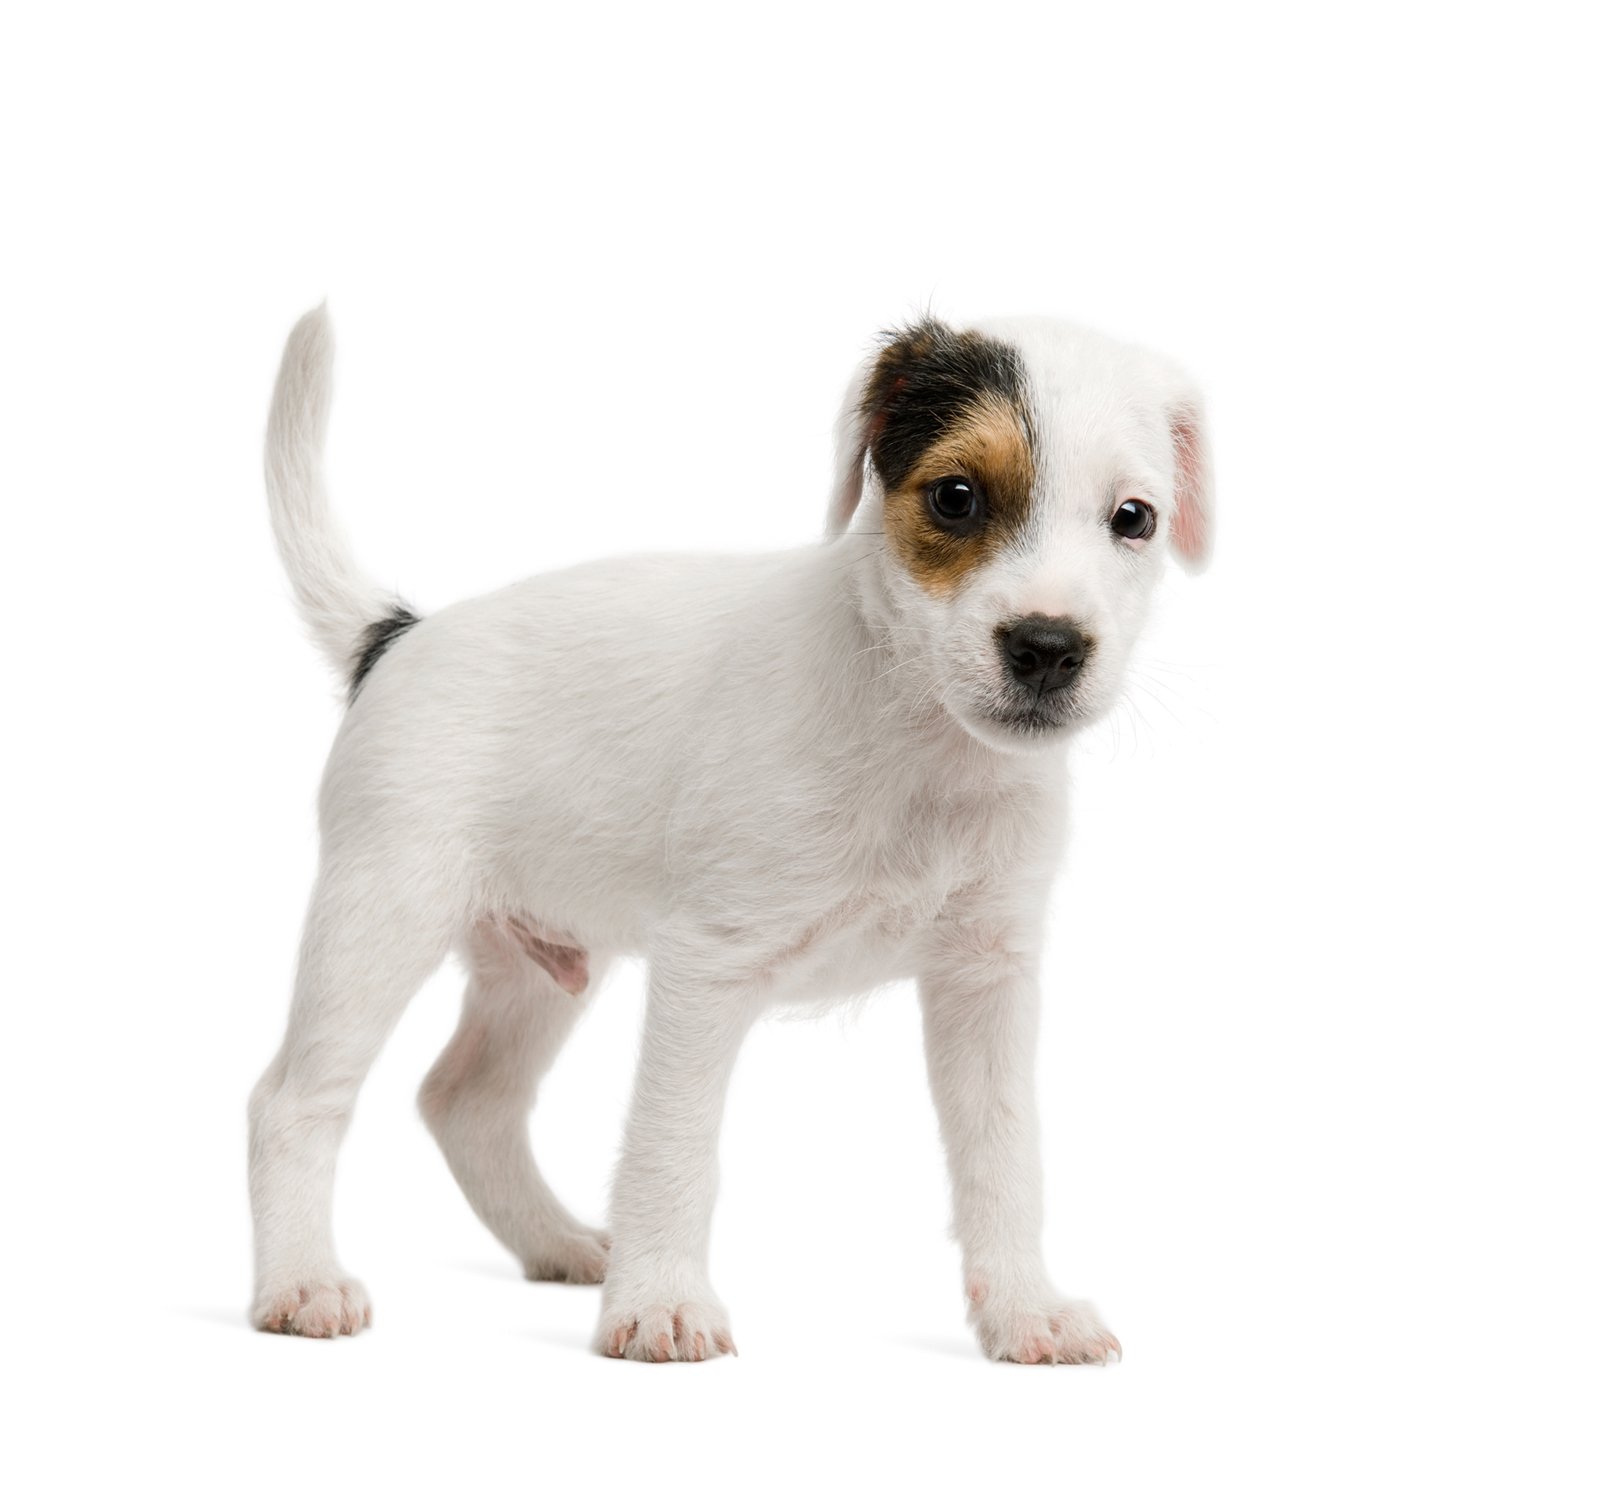 white dog white background